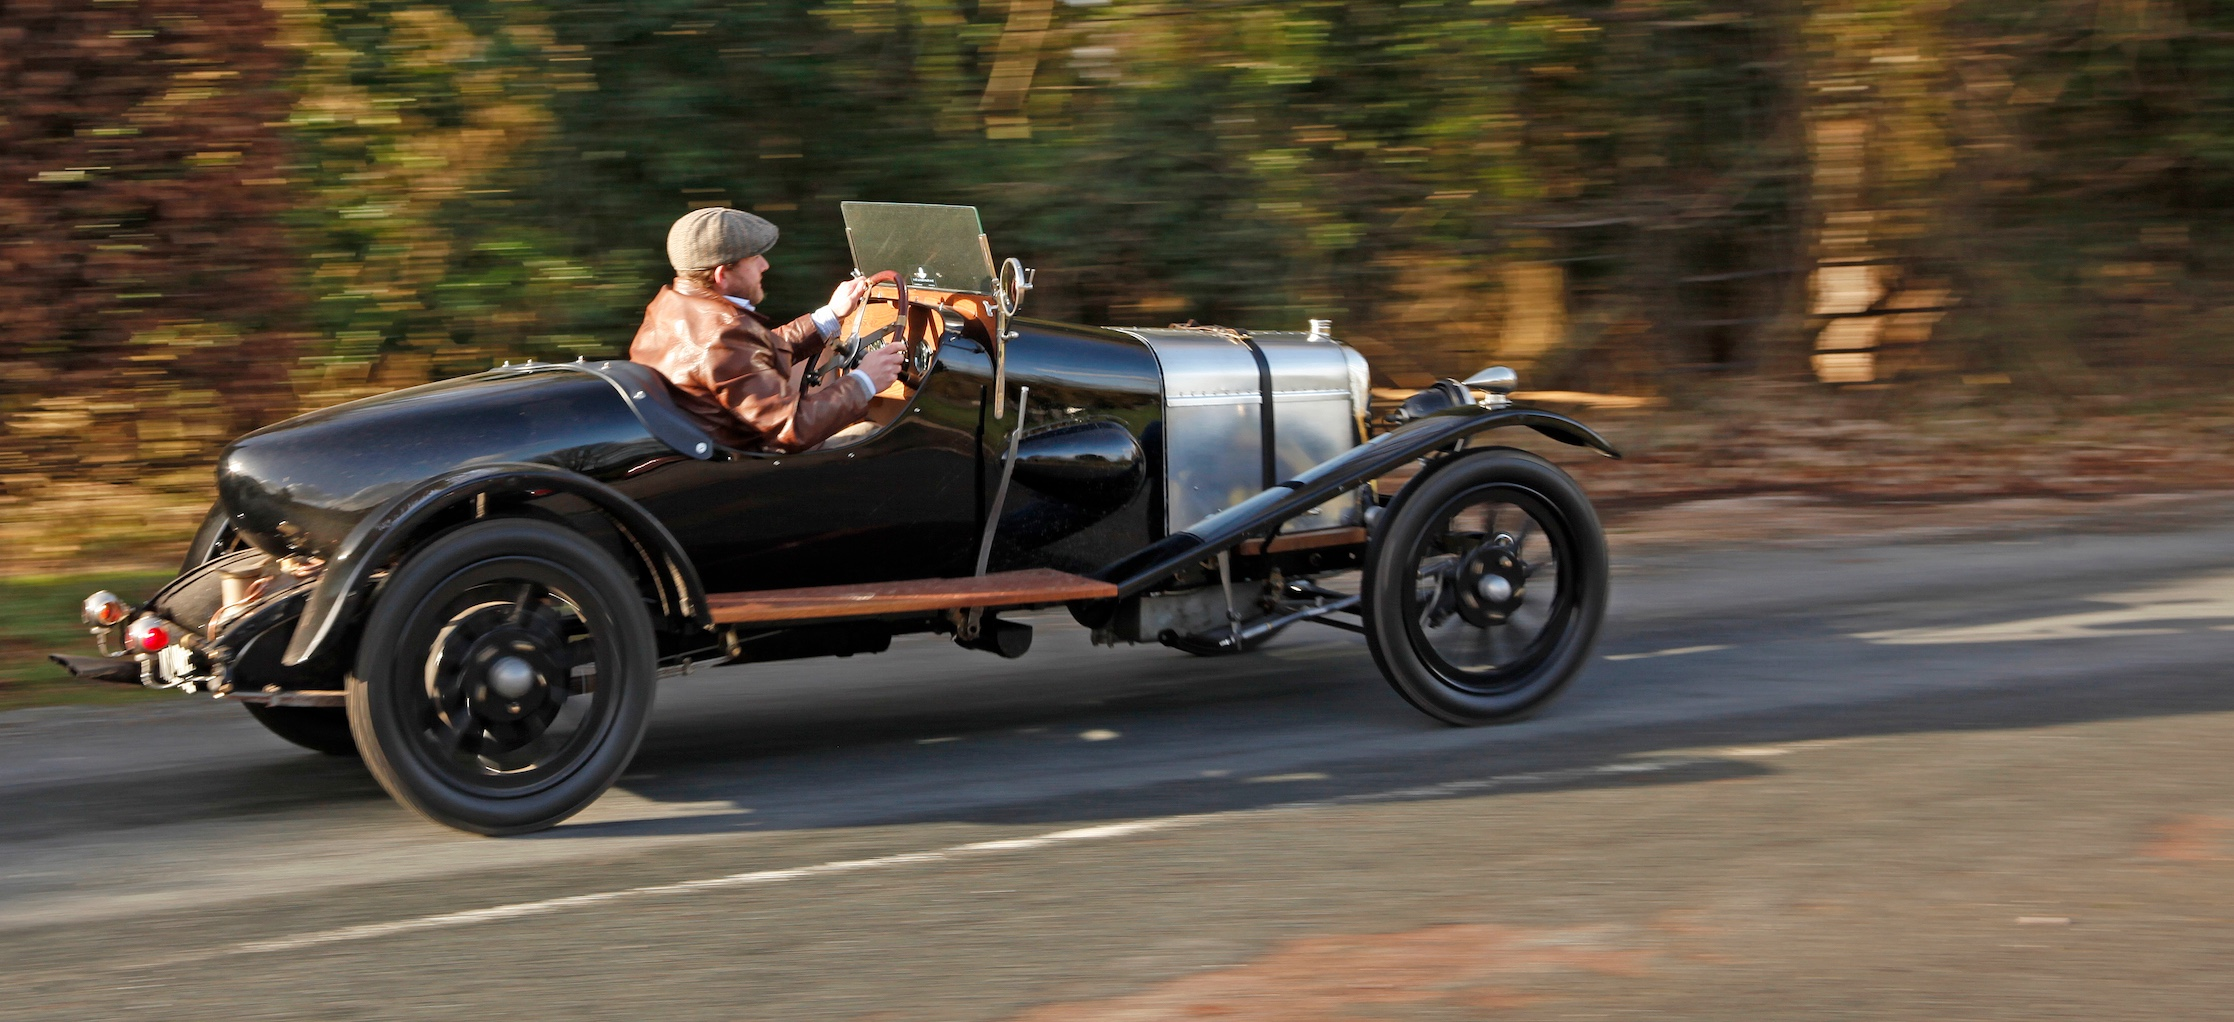 1921 Aston Martin A3 prototype has been restored | Aston Martin Heritage Trust photos